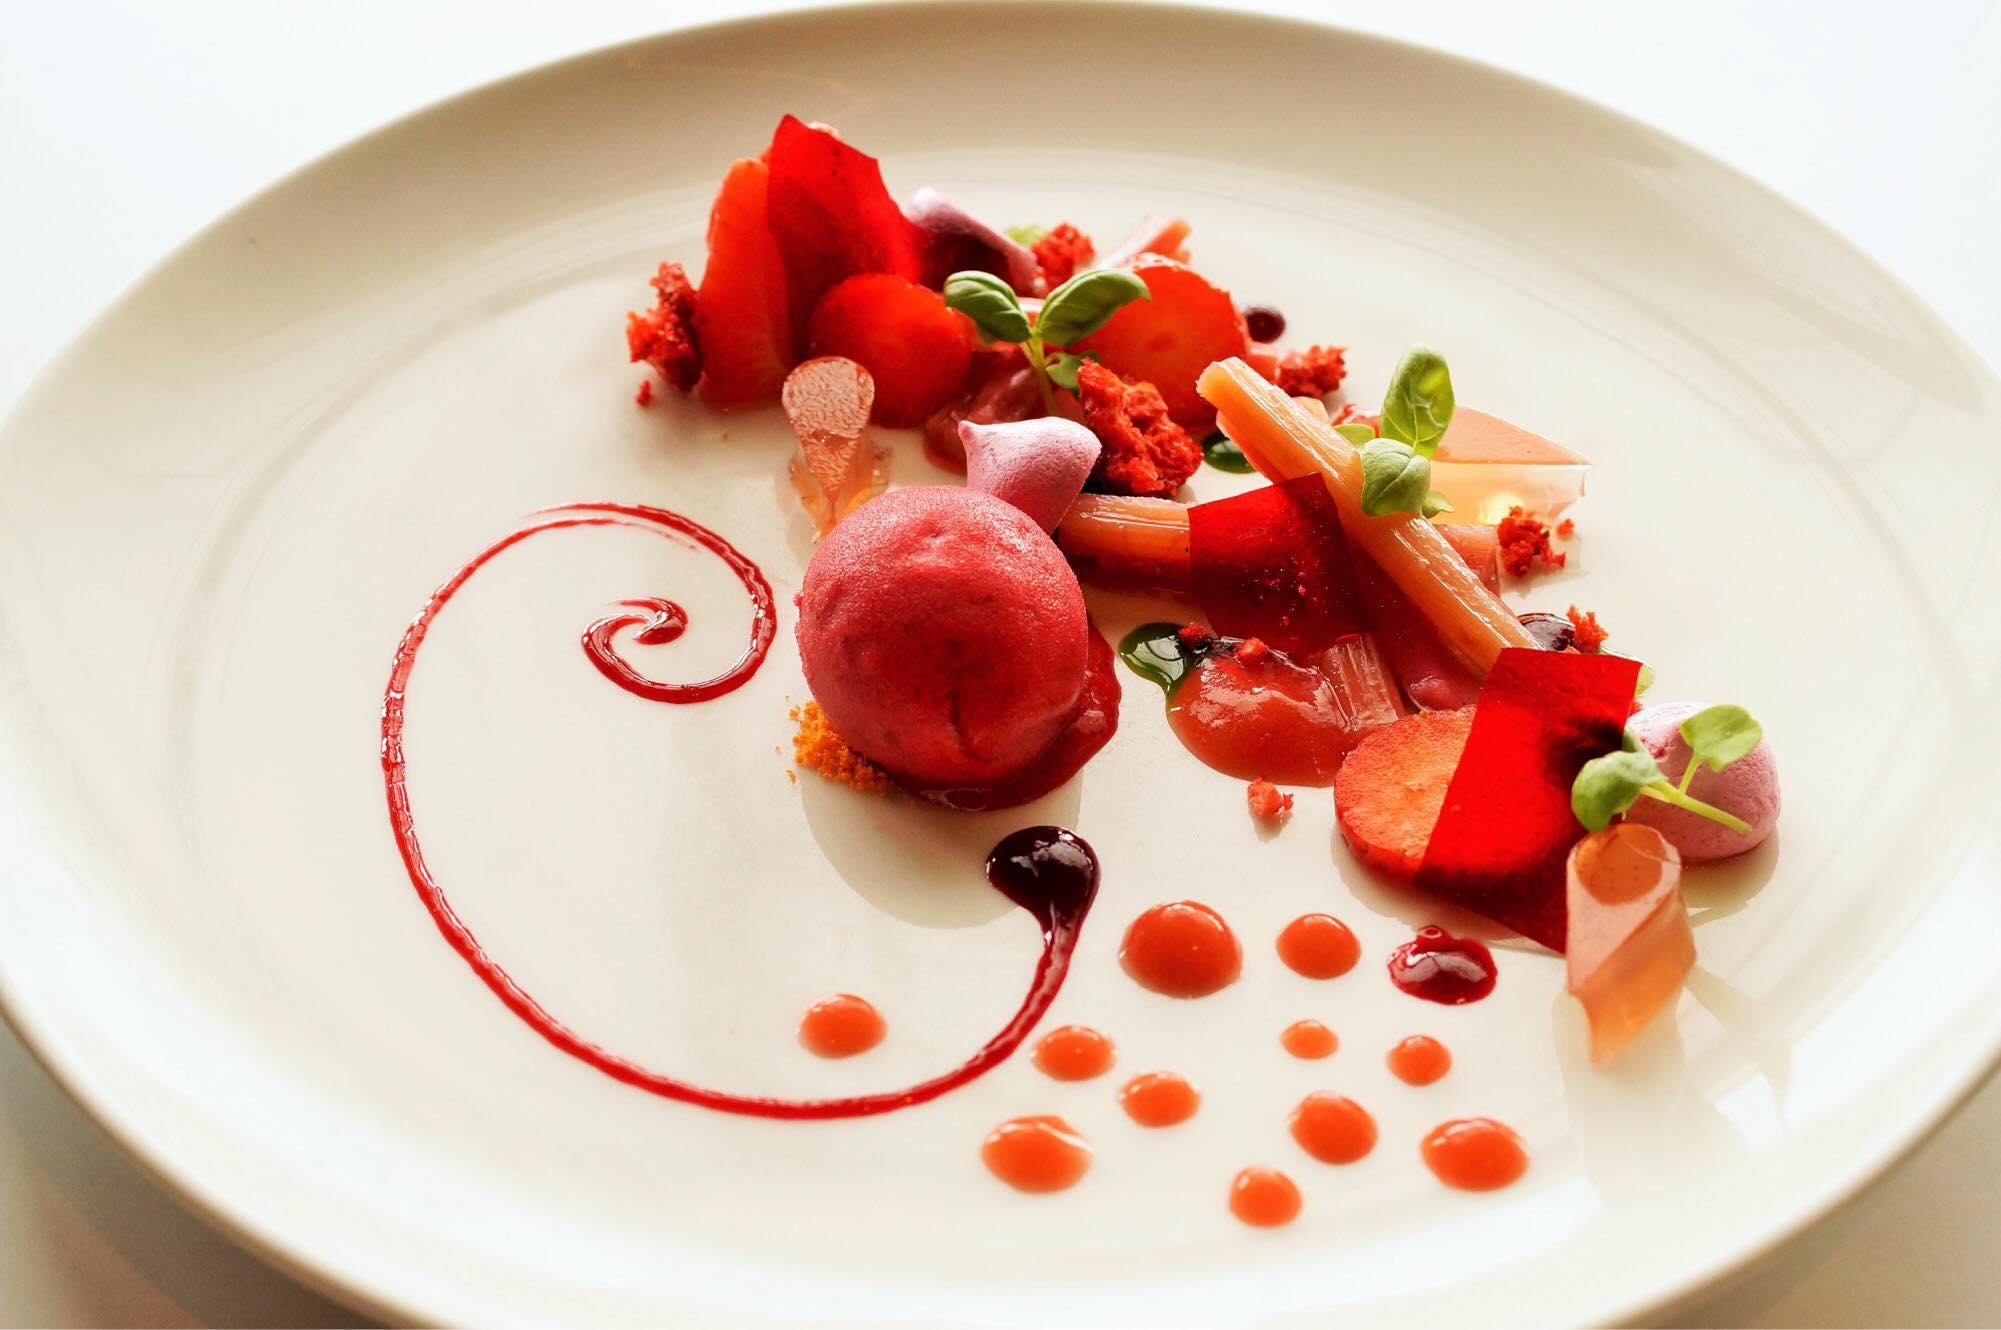 Textures of Strawberry